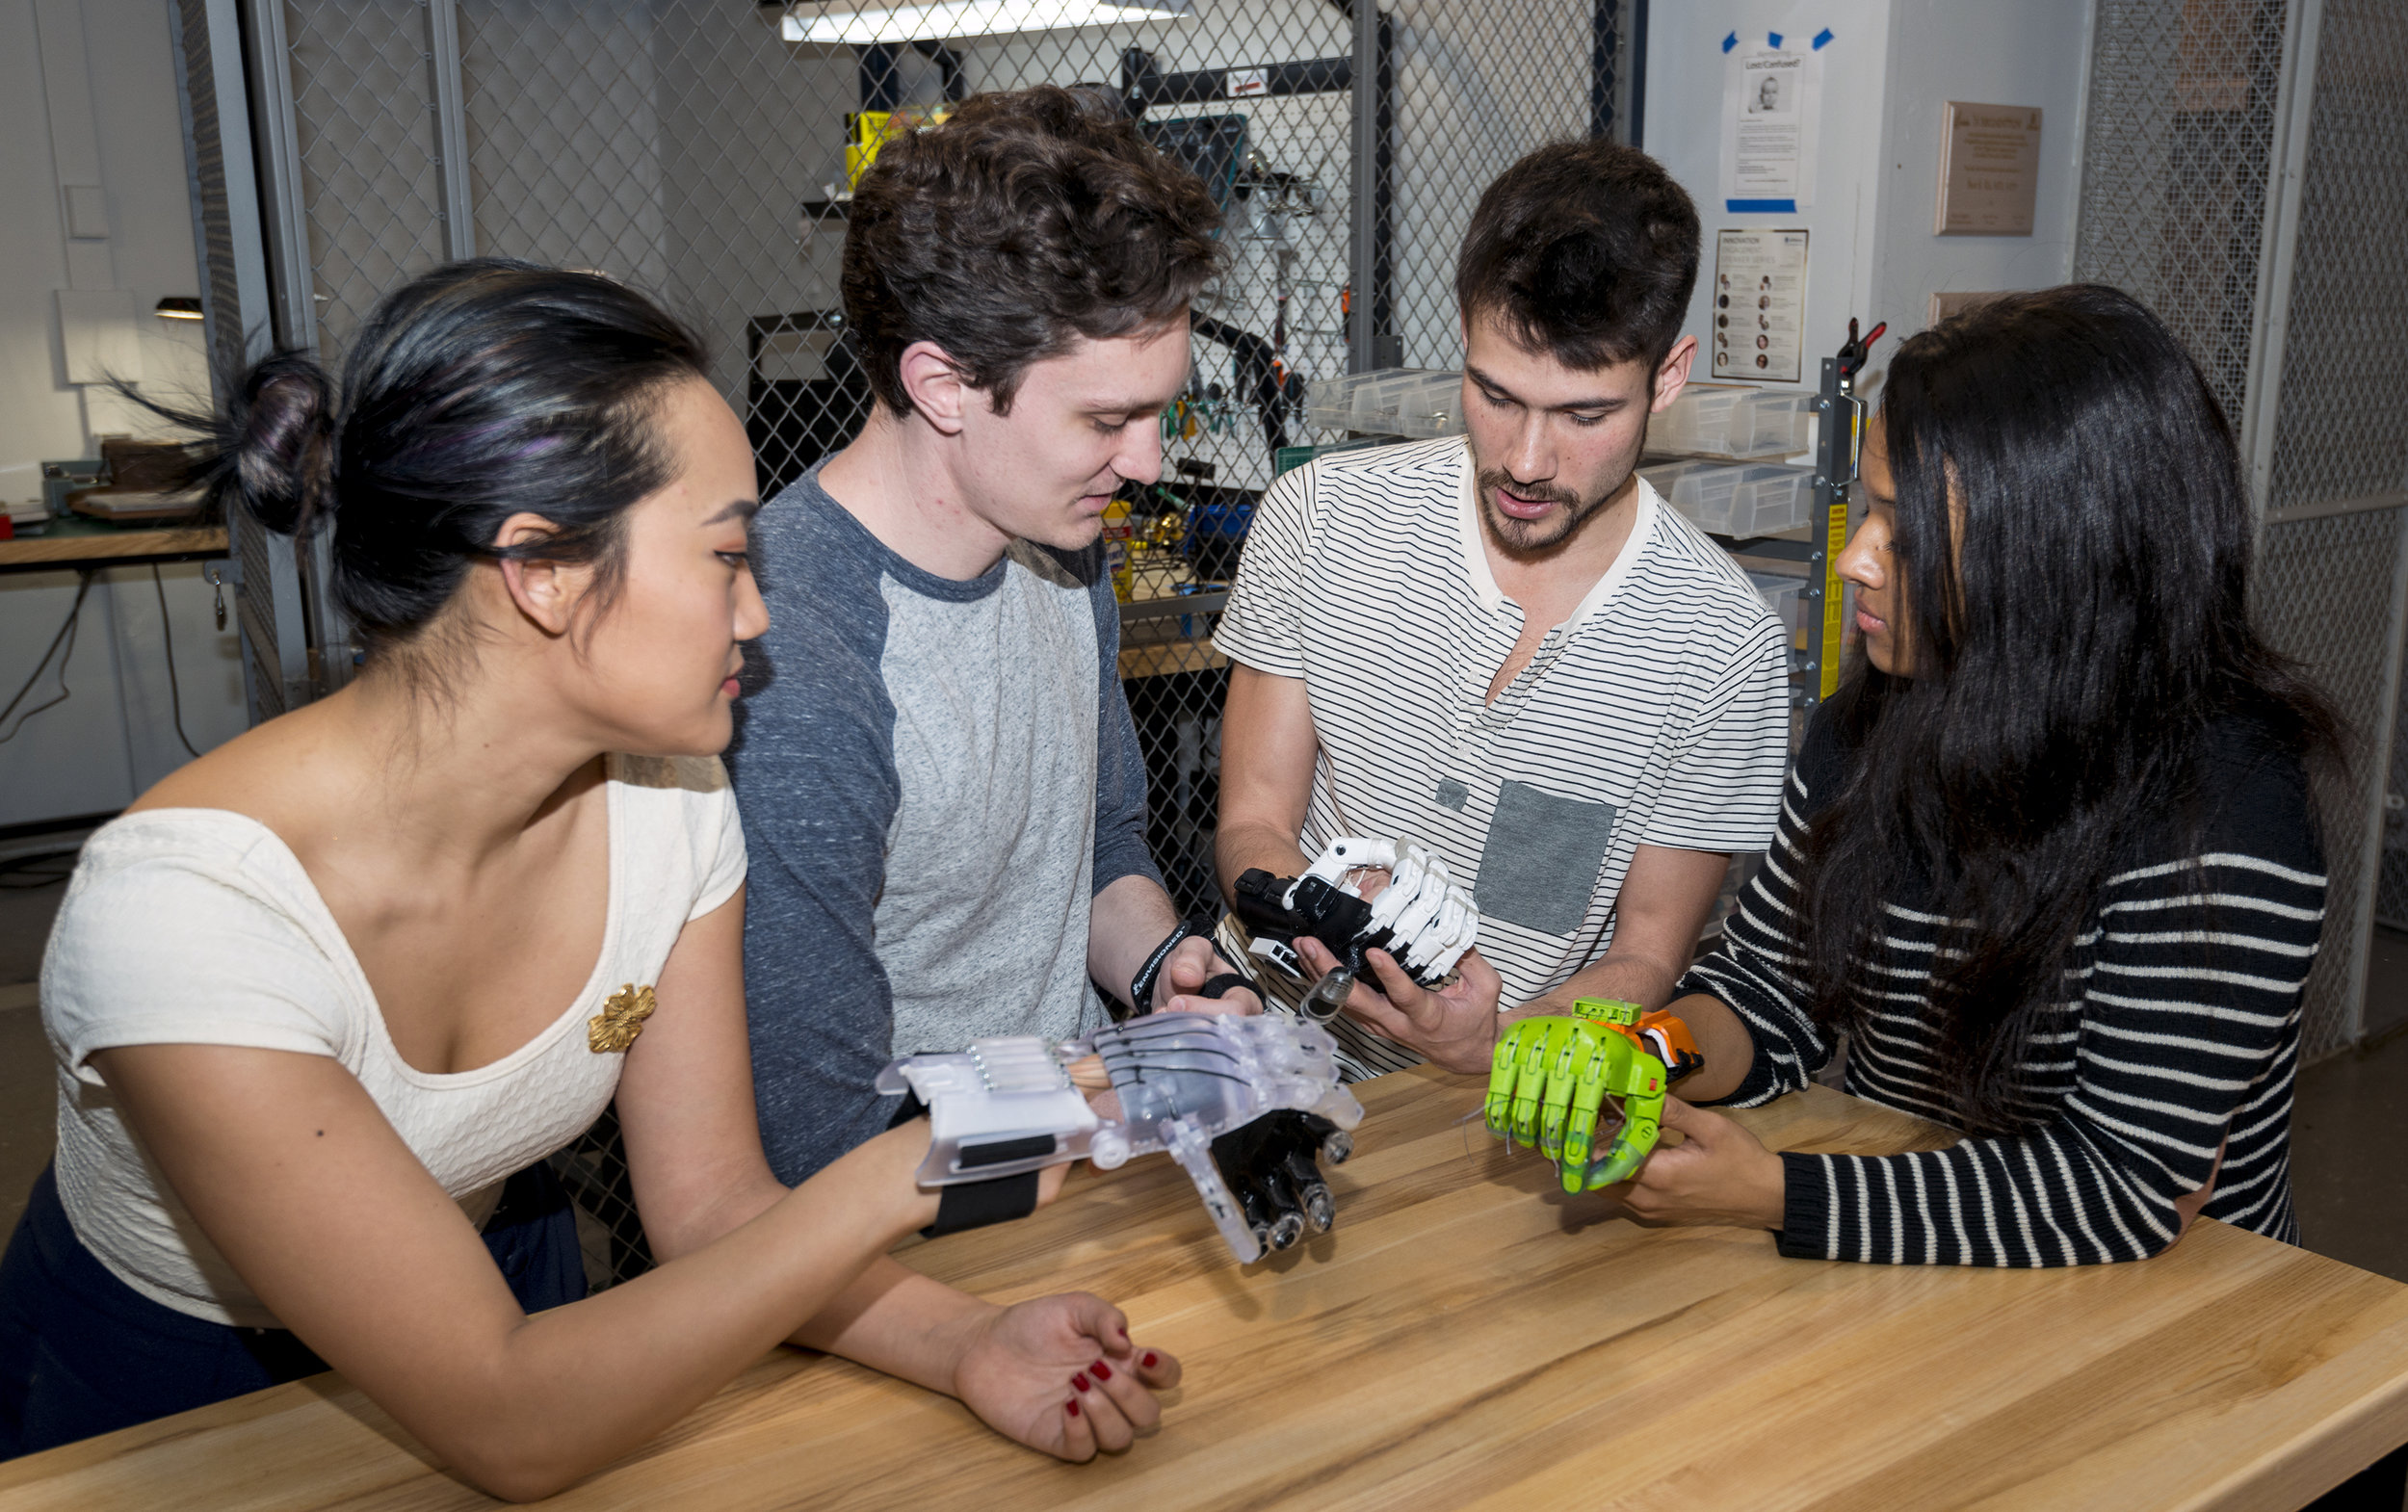 JeffDESIGN Medical Students, testing out a few different versions of 3D printed prosthetic hands, including a robotic hand that can be produced at a fraction of the cost of commercial robotic prosthetics.